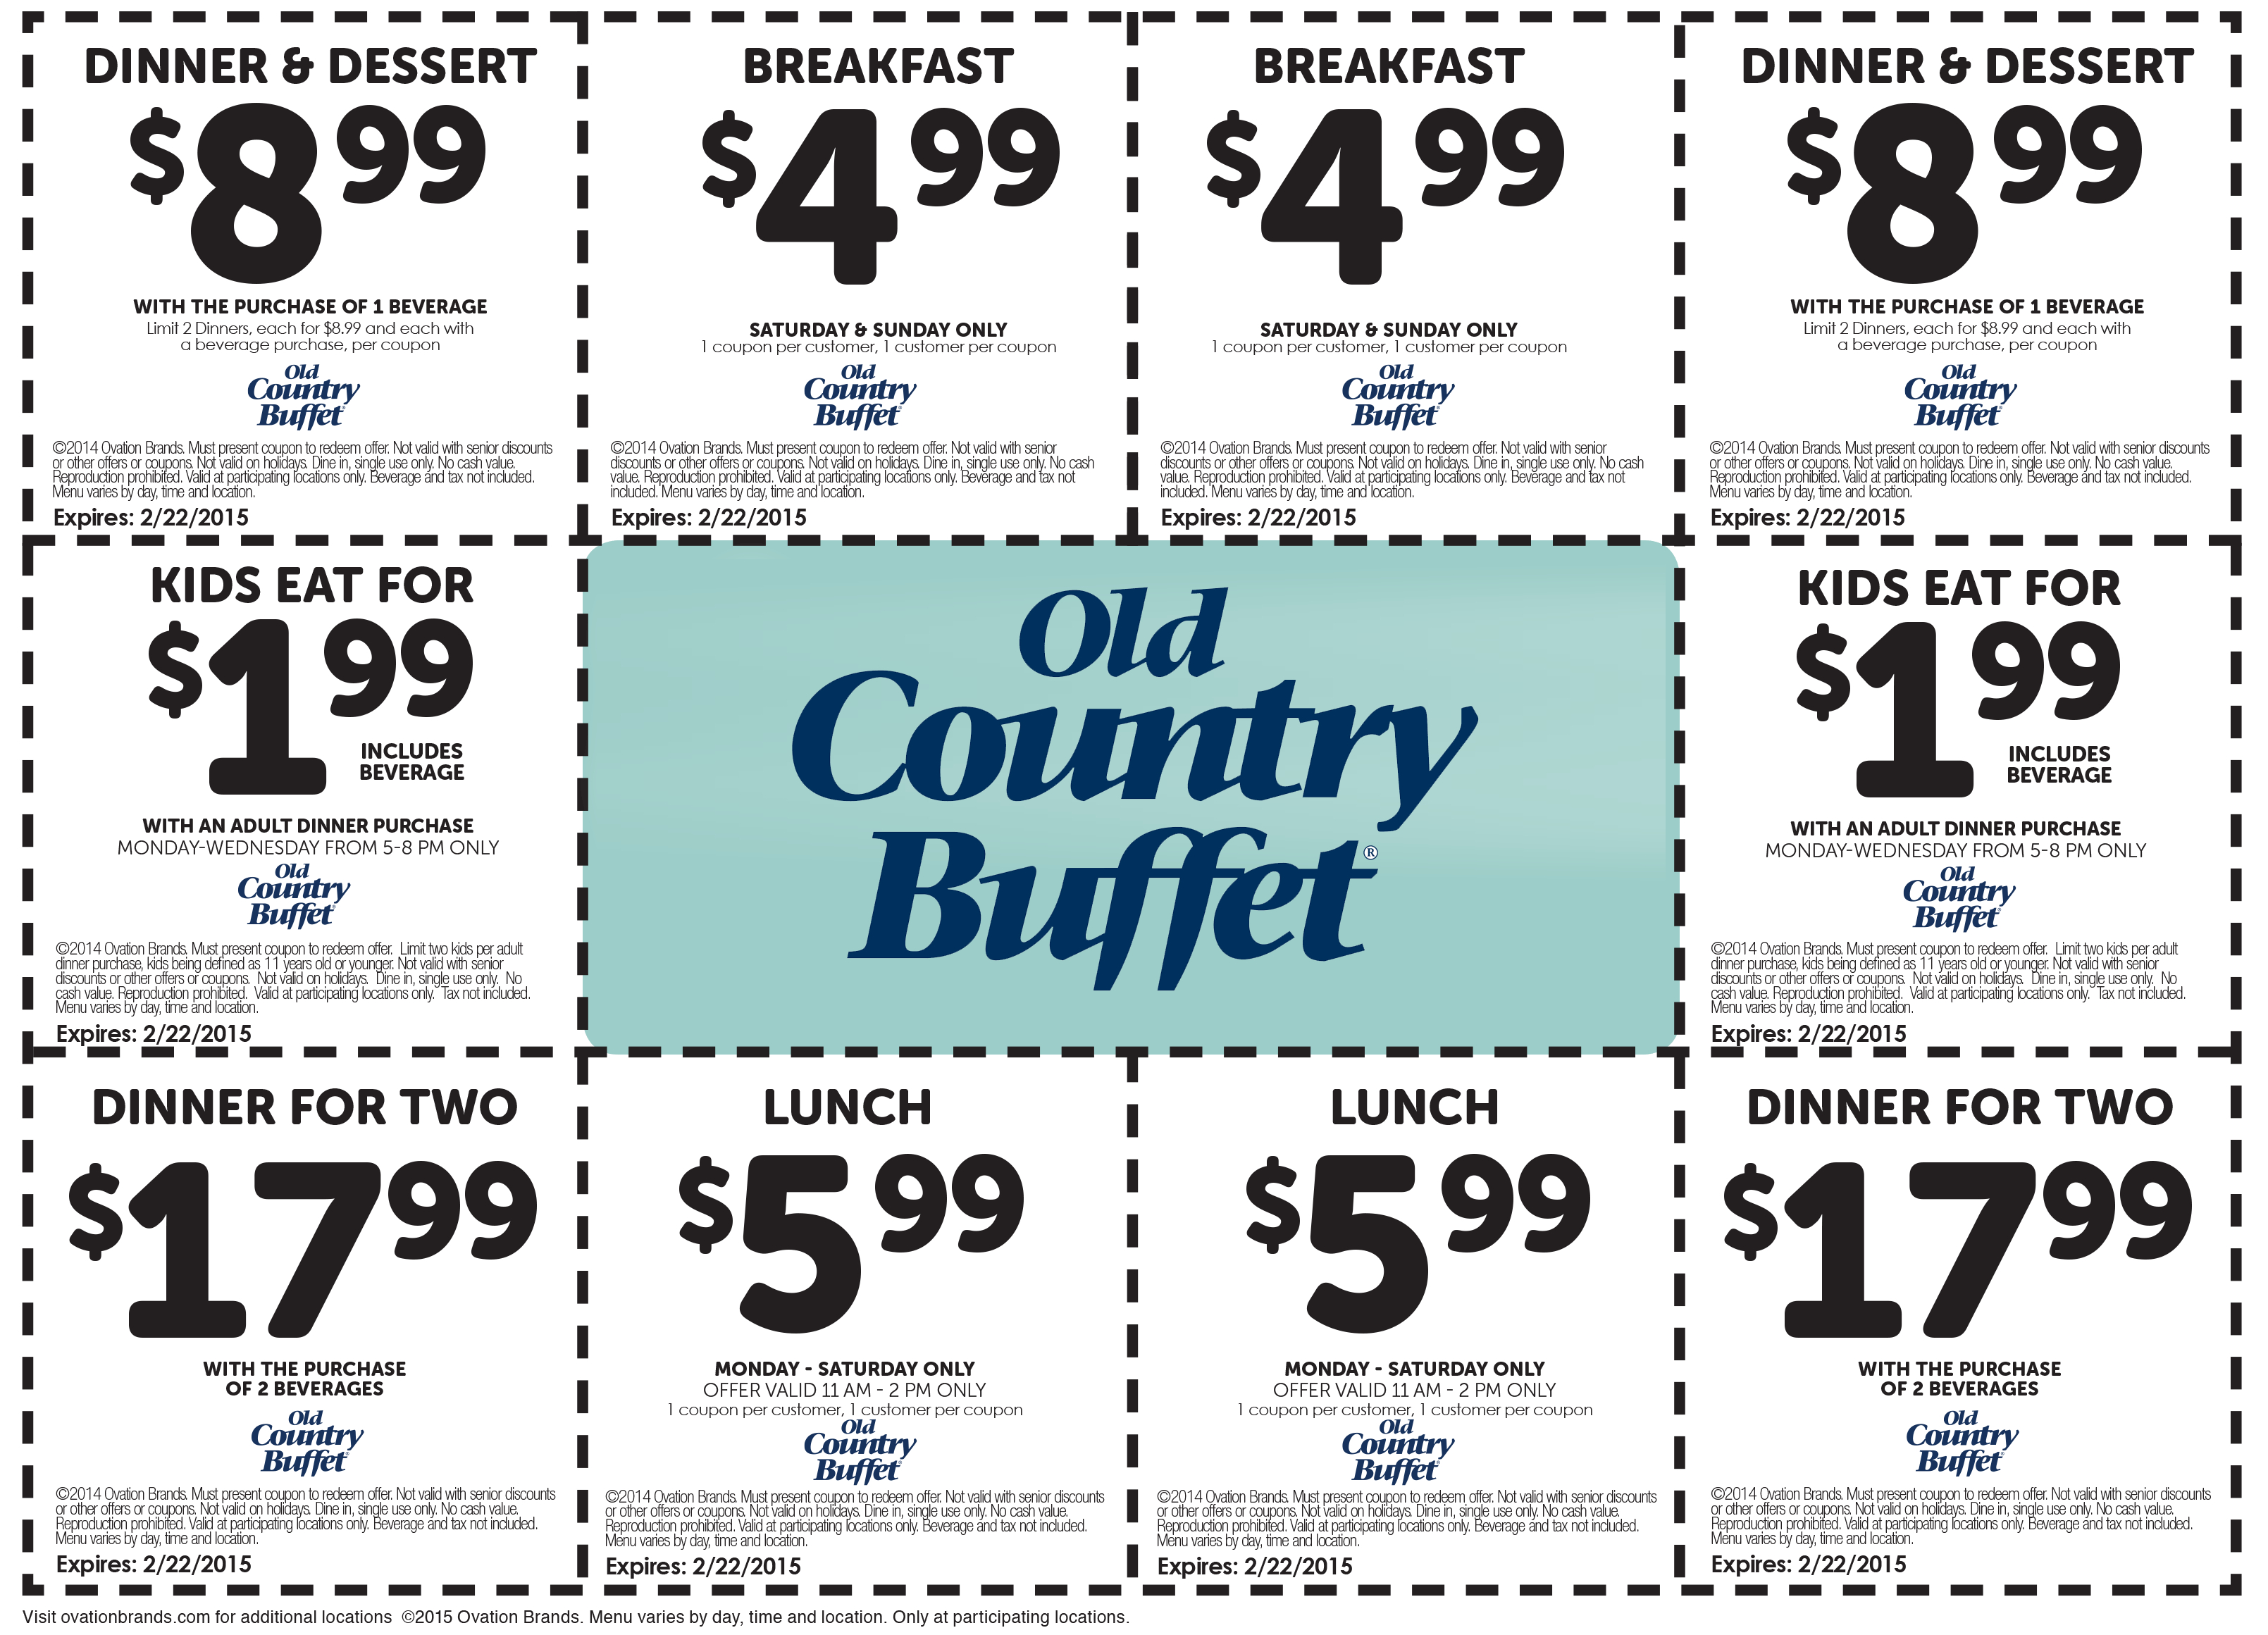 Old Country Buffet Coupons - $5 Breakfast, $6 Lunch & More At Old - Old Country Buffet Printable Coupons Buy One Get One Free